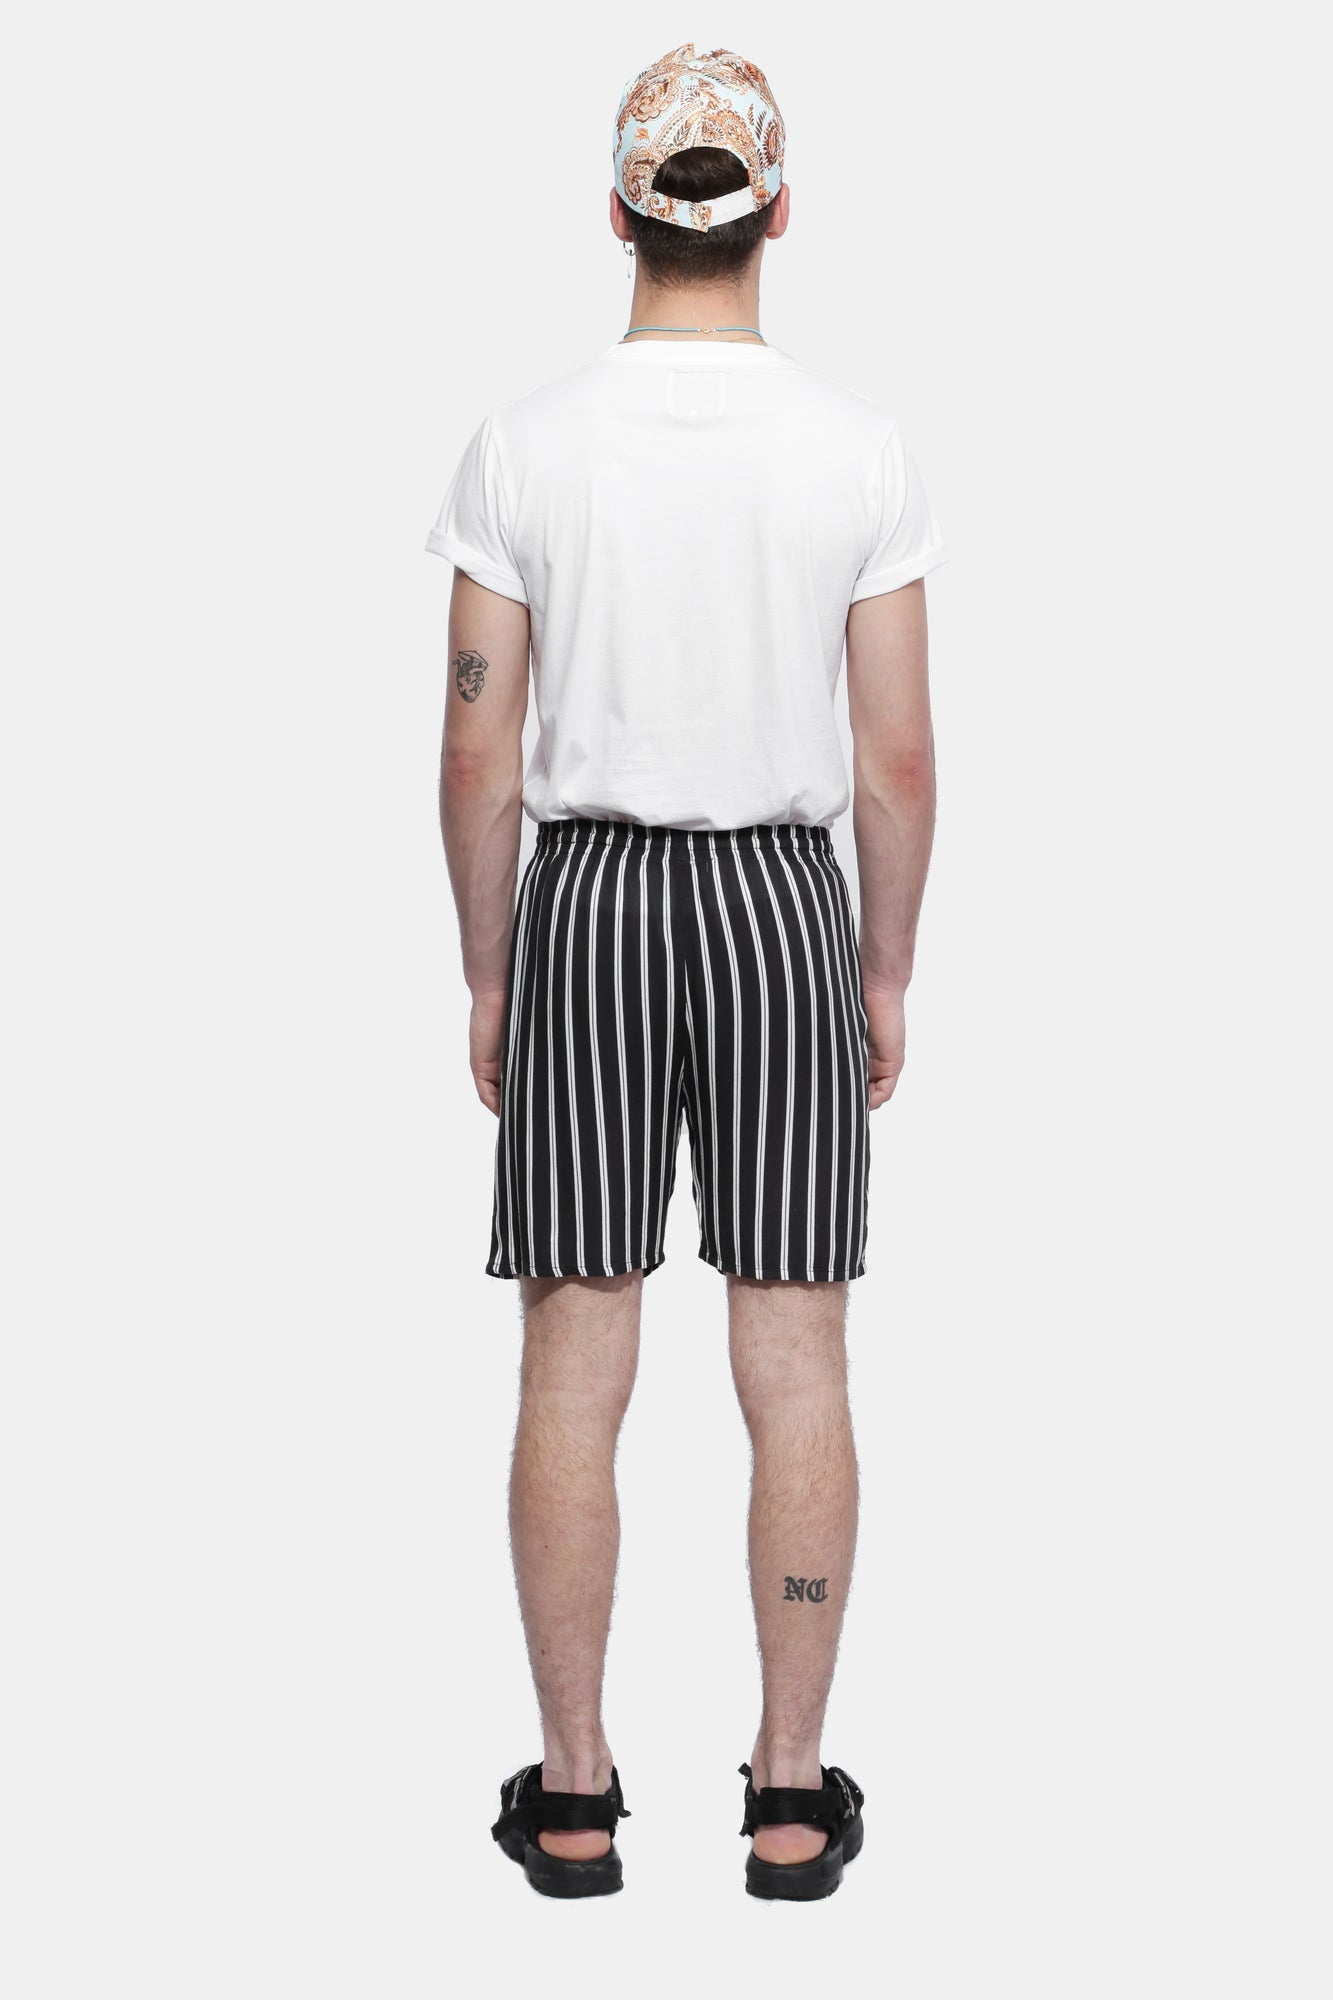 STRIPED SHORTS - Esteban Cortazar